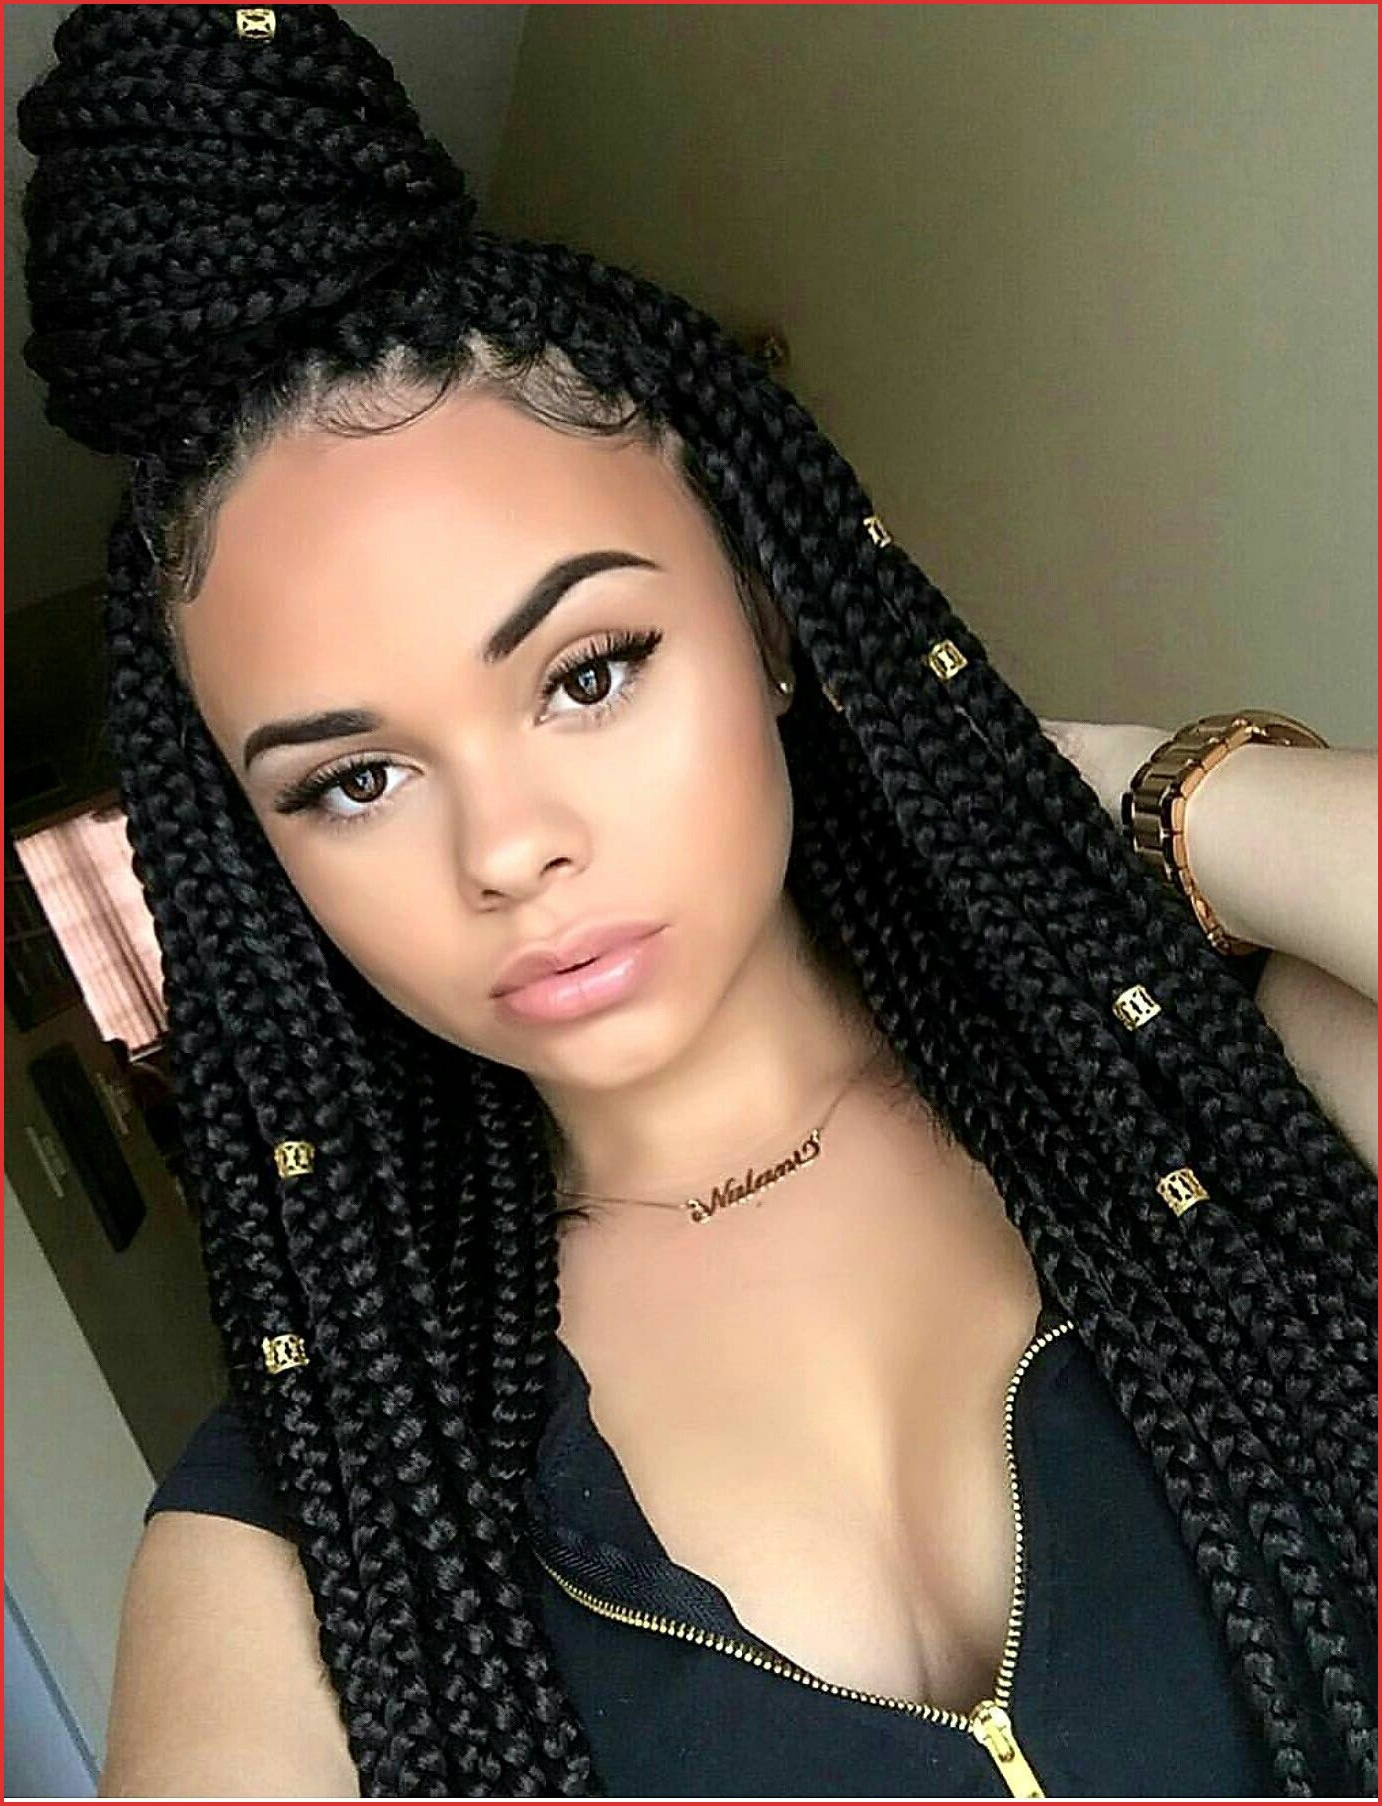 Hairstyles : Long Box Braids Hairstyle Licious Big Box Intended For Trendy Box Braided Hairstyles (Gallery 15 of 20)